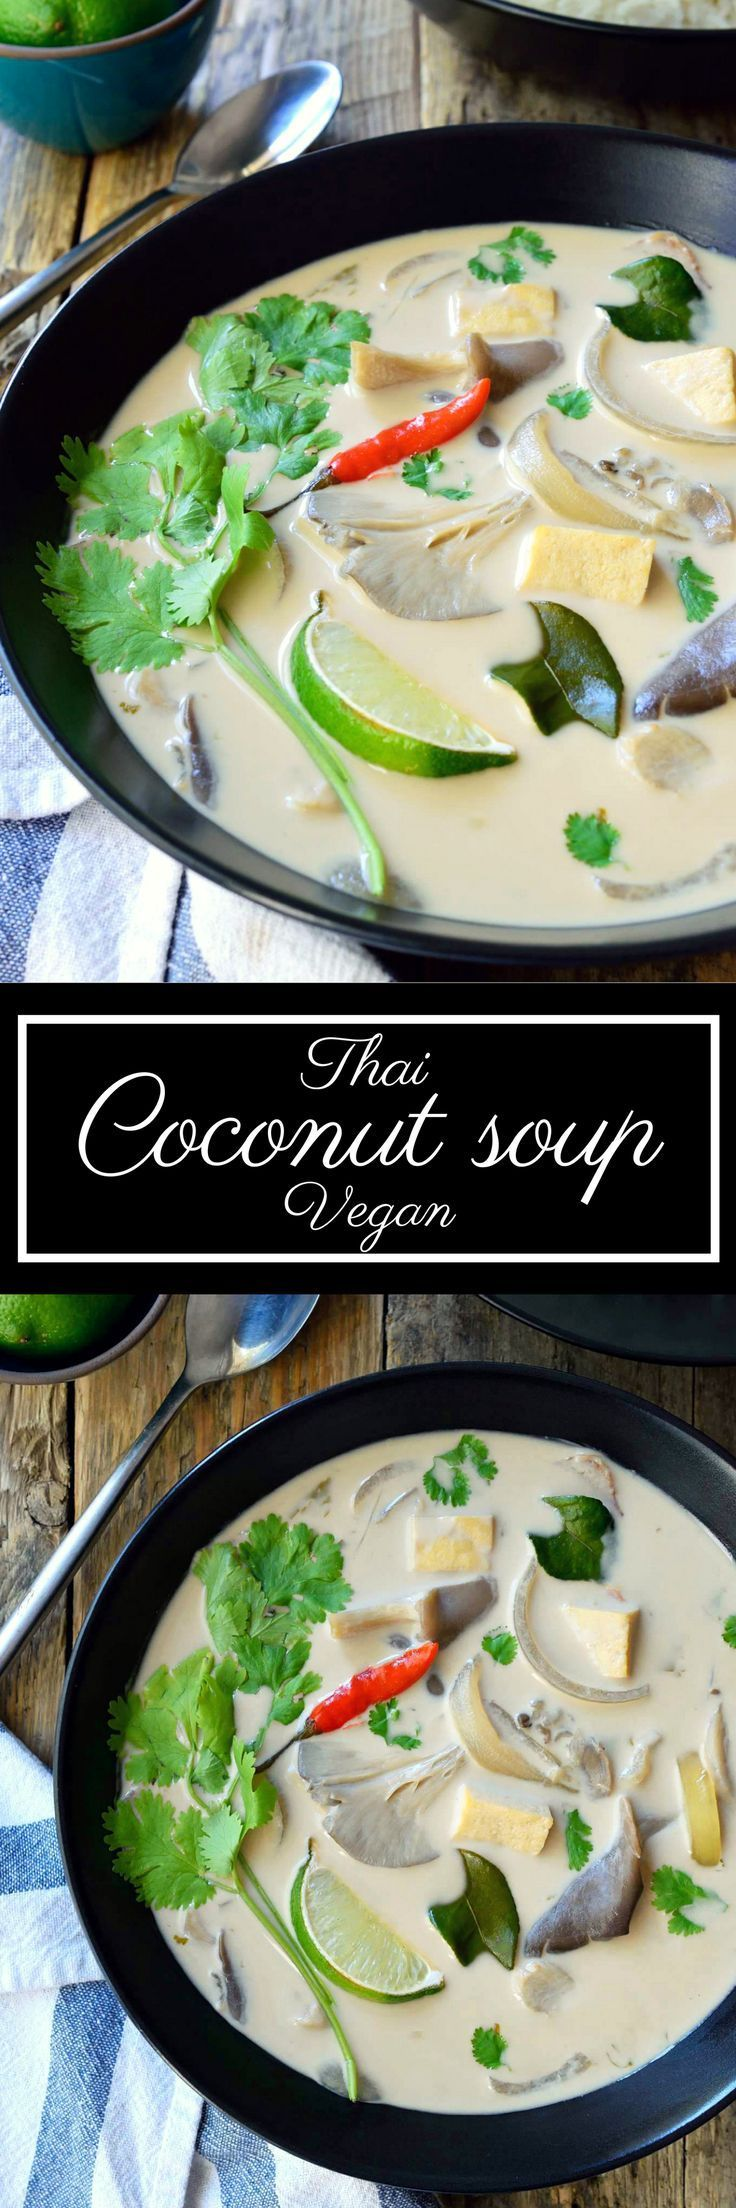 This vegan Thai coconut soup is a light and tasty, totally vegetarian version of Tom Kha Gai – one of Thailand's most famous soup exports. This soup perfectly balances the sour, sweet, salty and spicy flavours that Thai food is famous for. The best of all? This soup is super simple and ready is just 15 minutes!